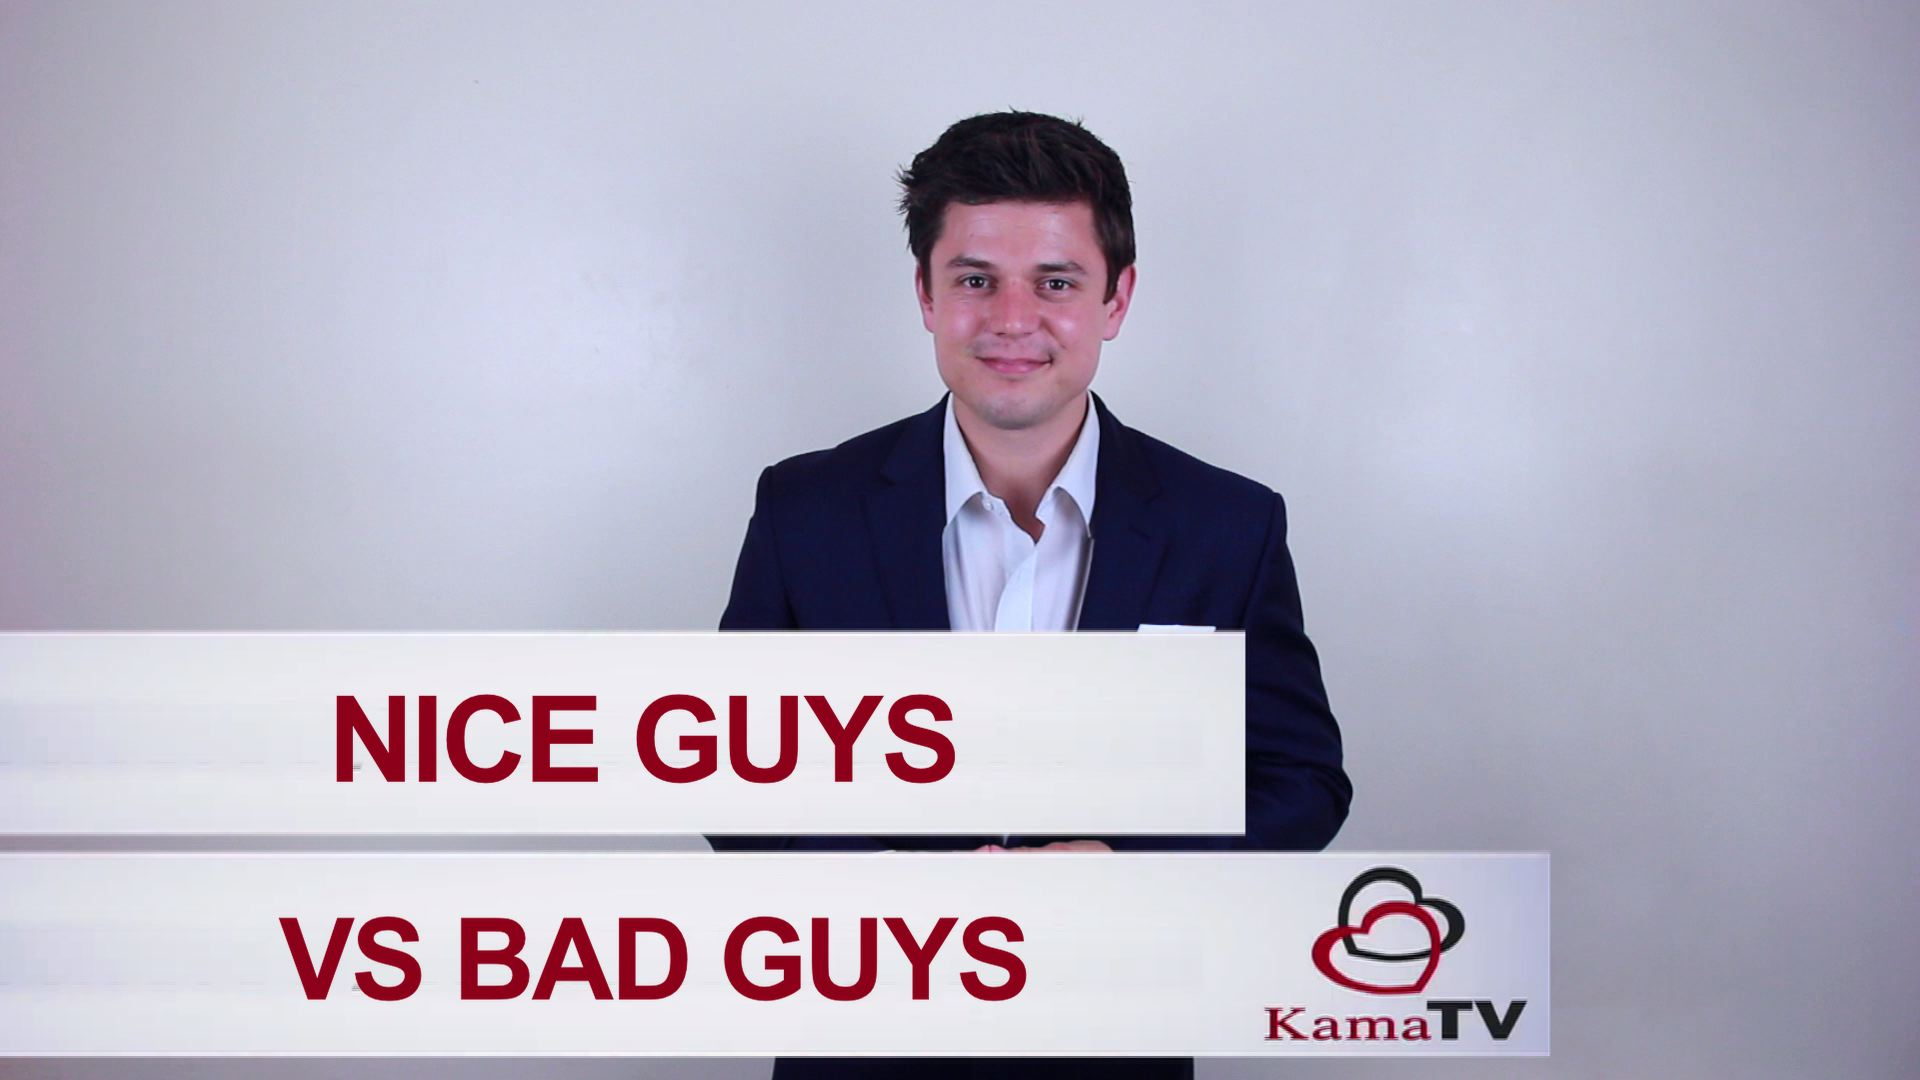 """dating good guys vs bad guys According to common lore, women are most attracted to """"bad boys"""" who treat  them with  """"nice guys"""" vs """"good guys"""" - what's the difference."""